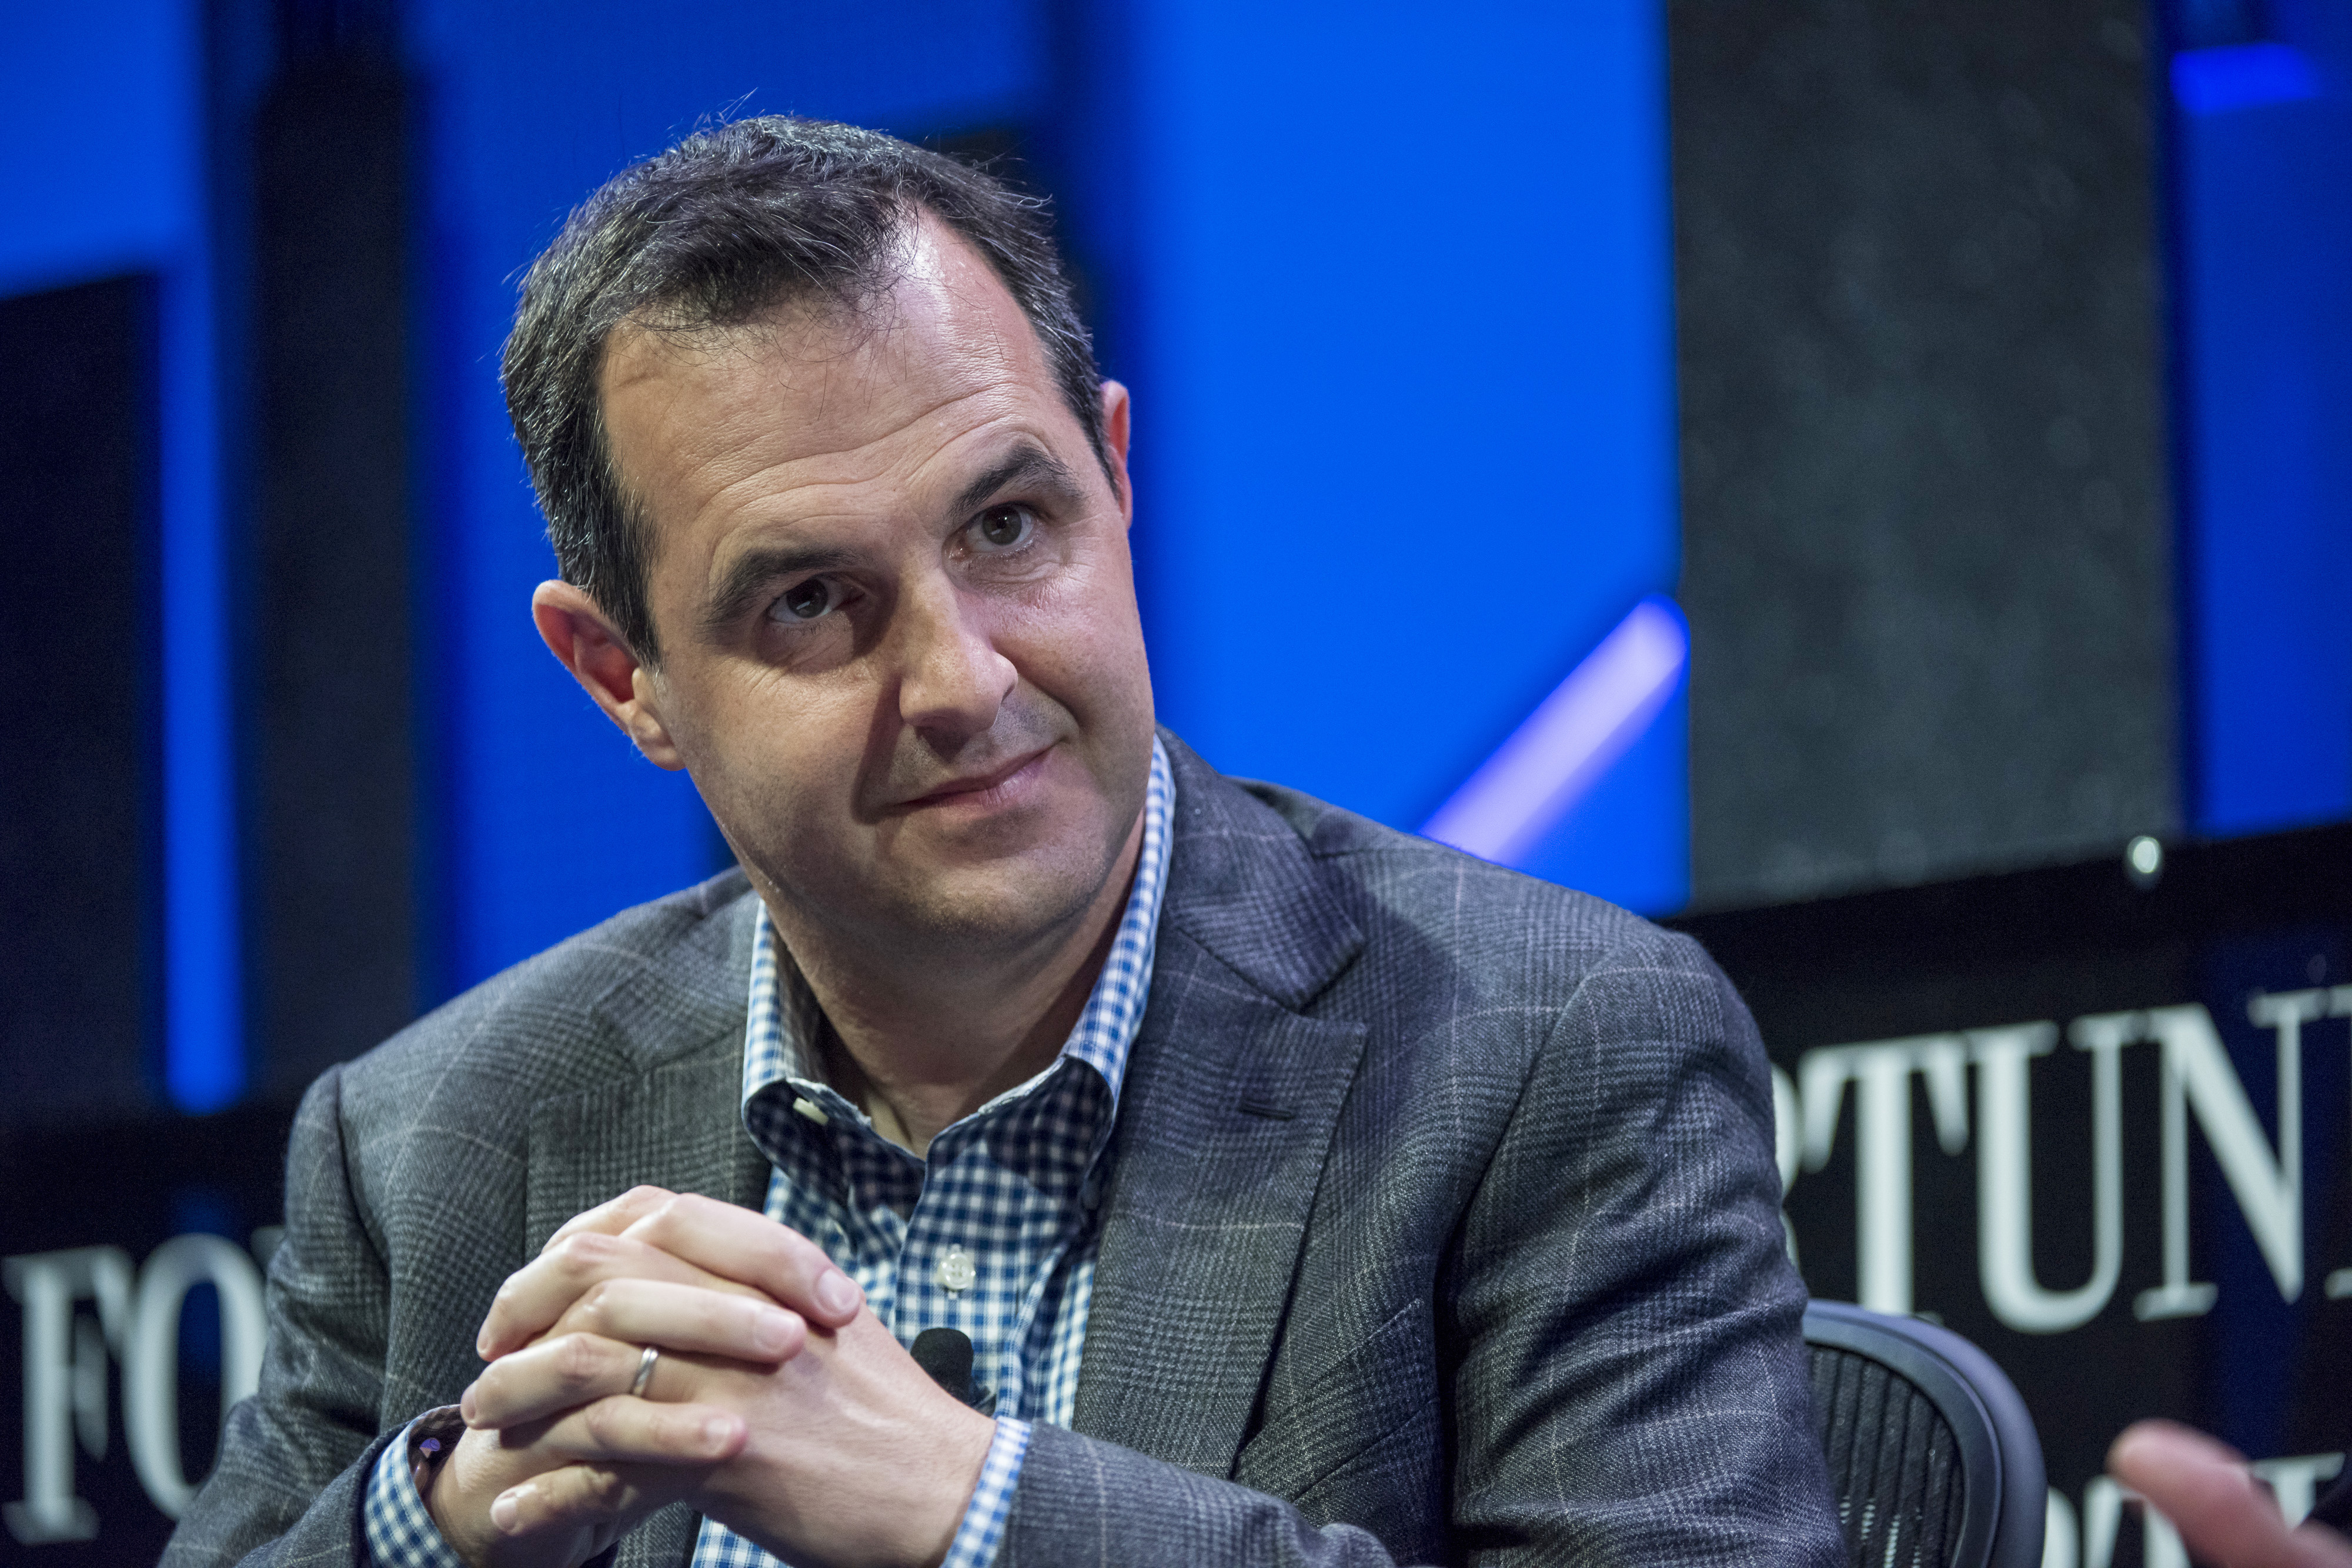 Renaud Laplanche, former CEO of LendingClub. is launching a new online lender called Upgrade.